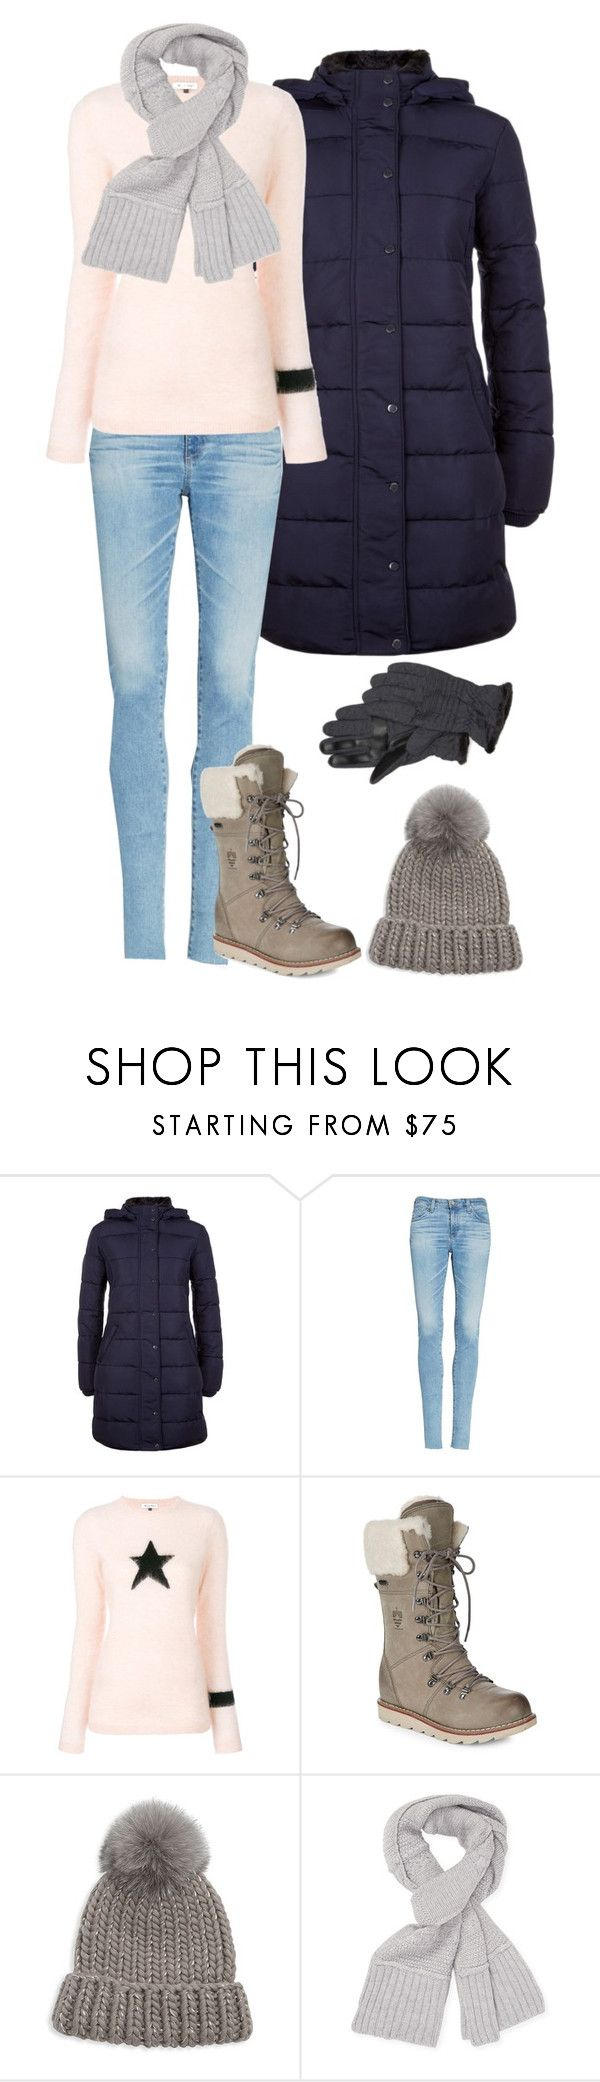 """""""Snowball Fight"""" by xxmonnyxx ❤ liked on Polyvore featuring Hobbs, AG Adriano Goldschmied, Bella Freud, Eugenia Kim, UGG and Isotoner"""